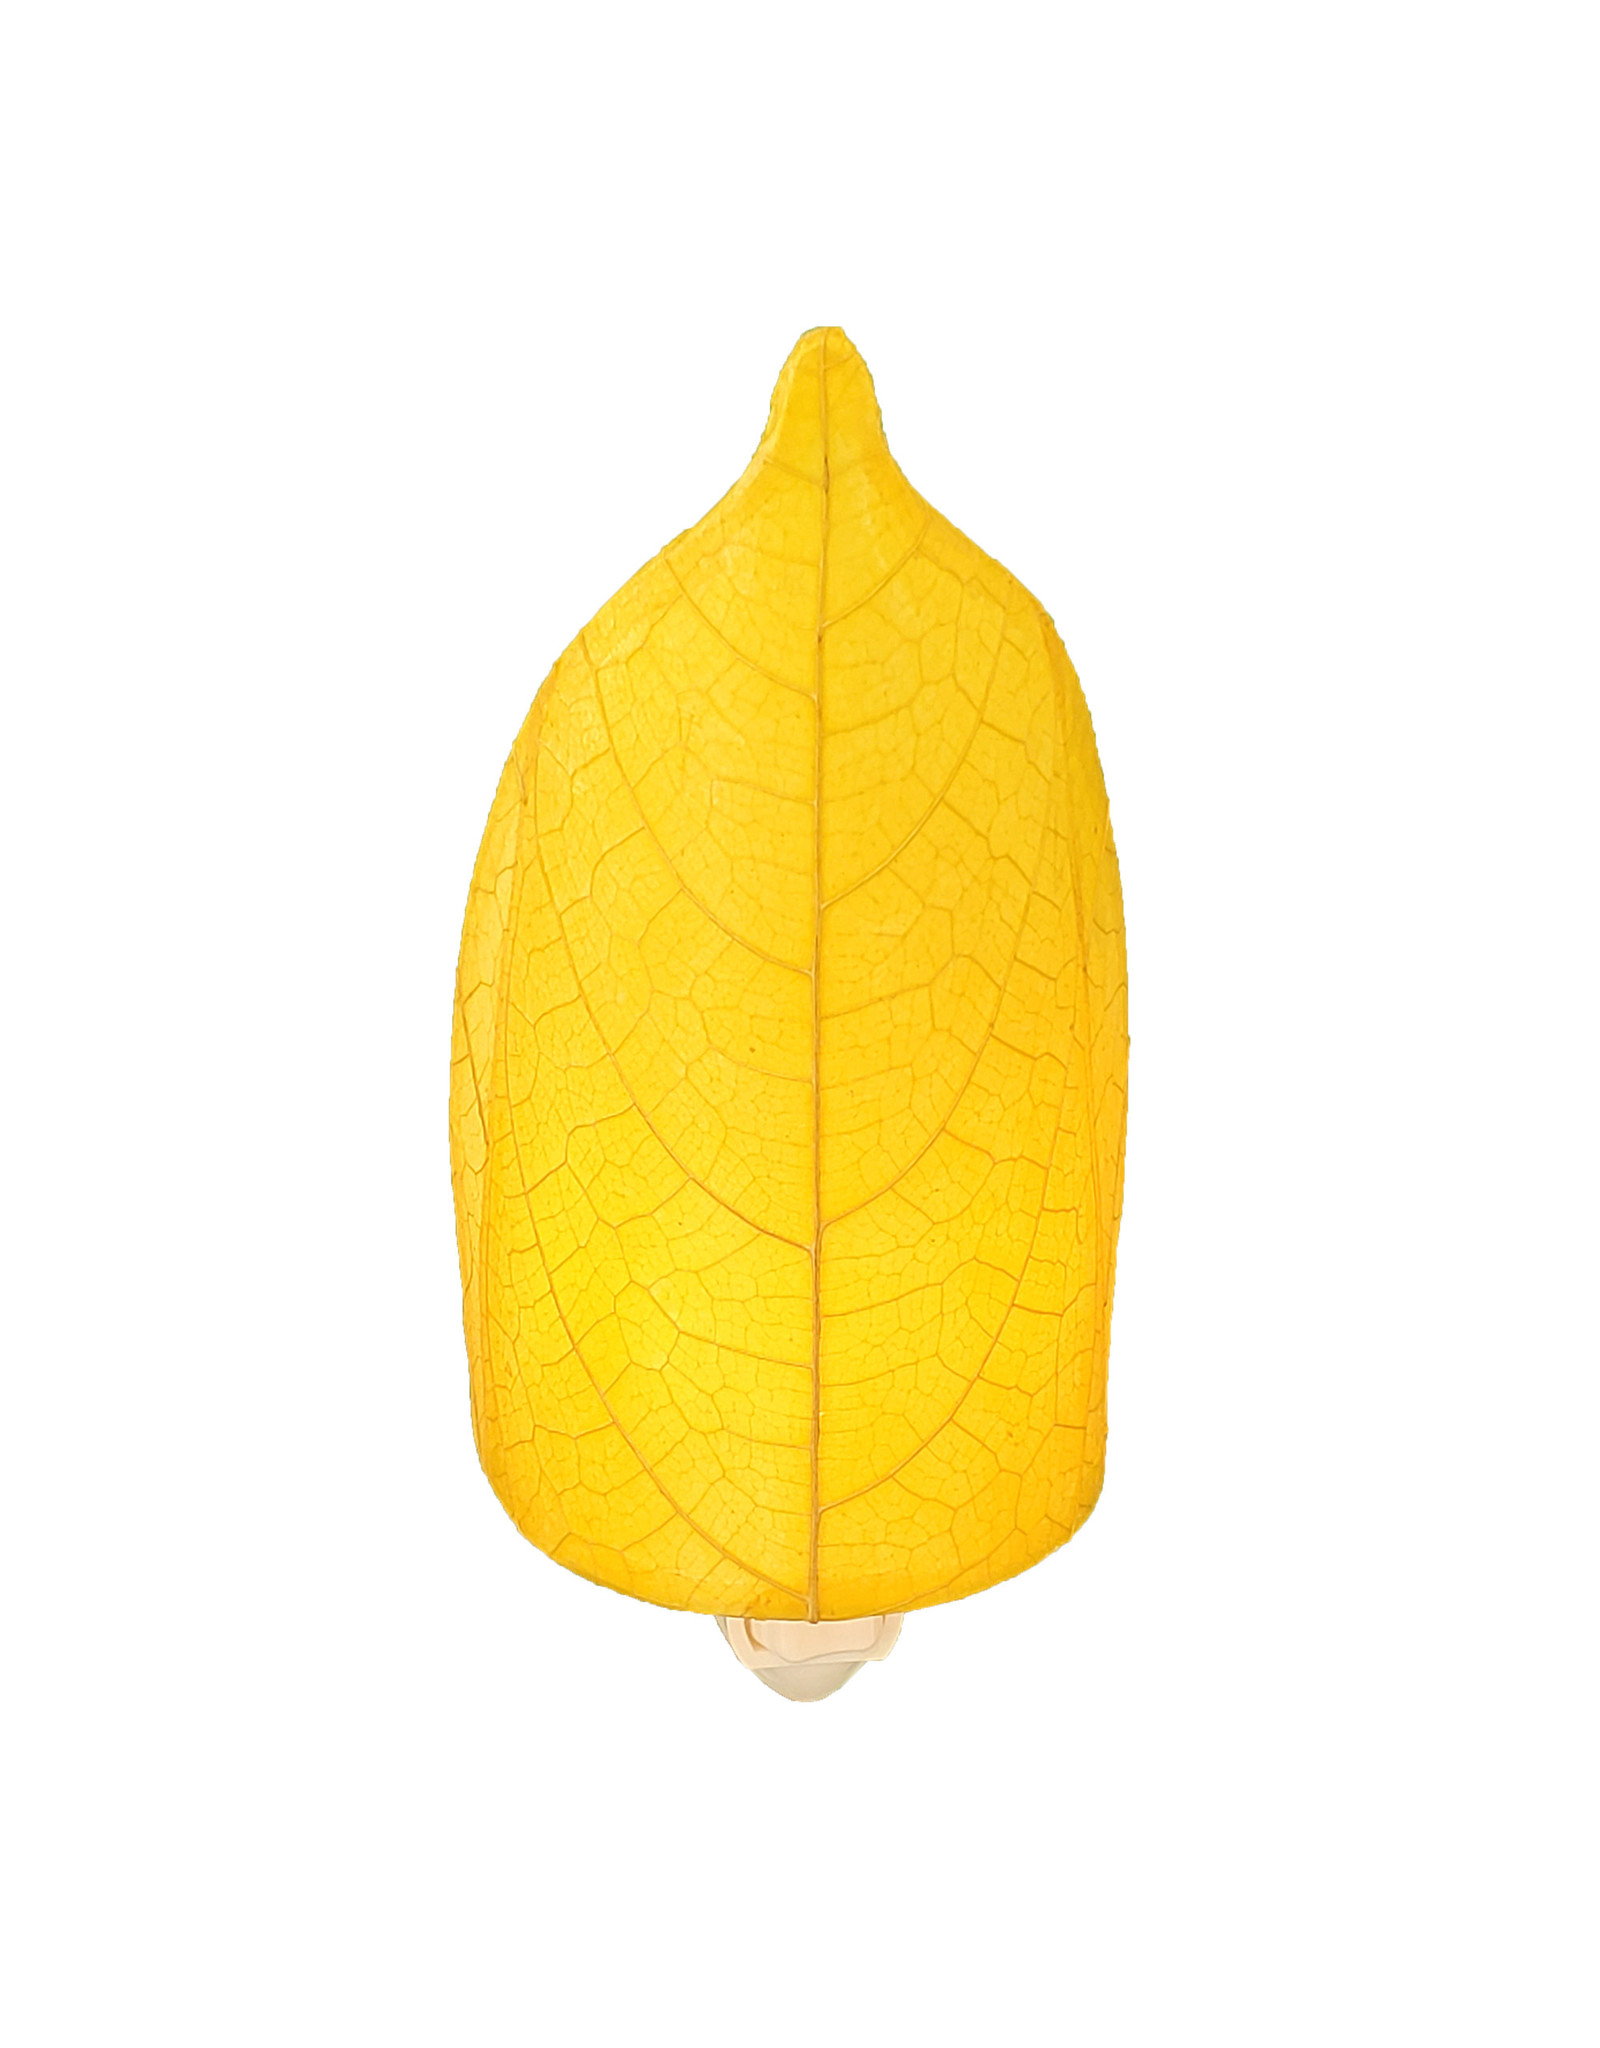 Eangee Home Design NIGHLIGHT, LARGE LEAF, YELLOW